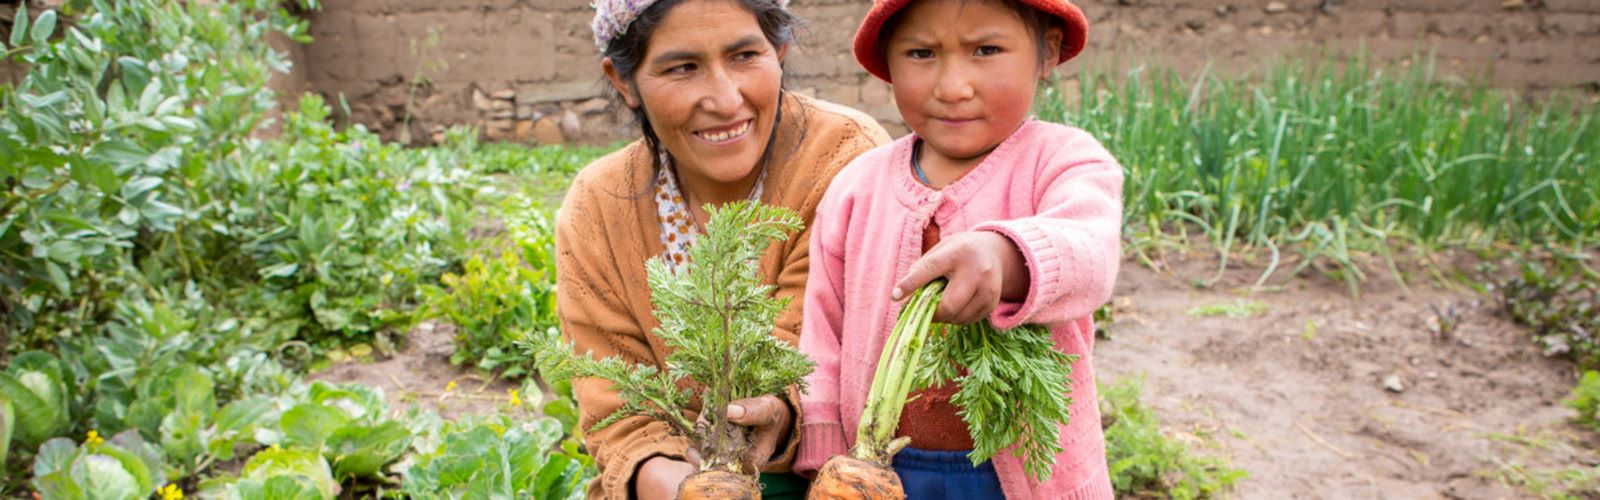 A mother and child in Bolivia